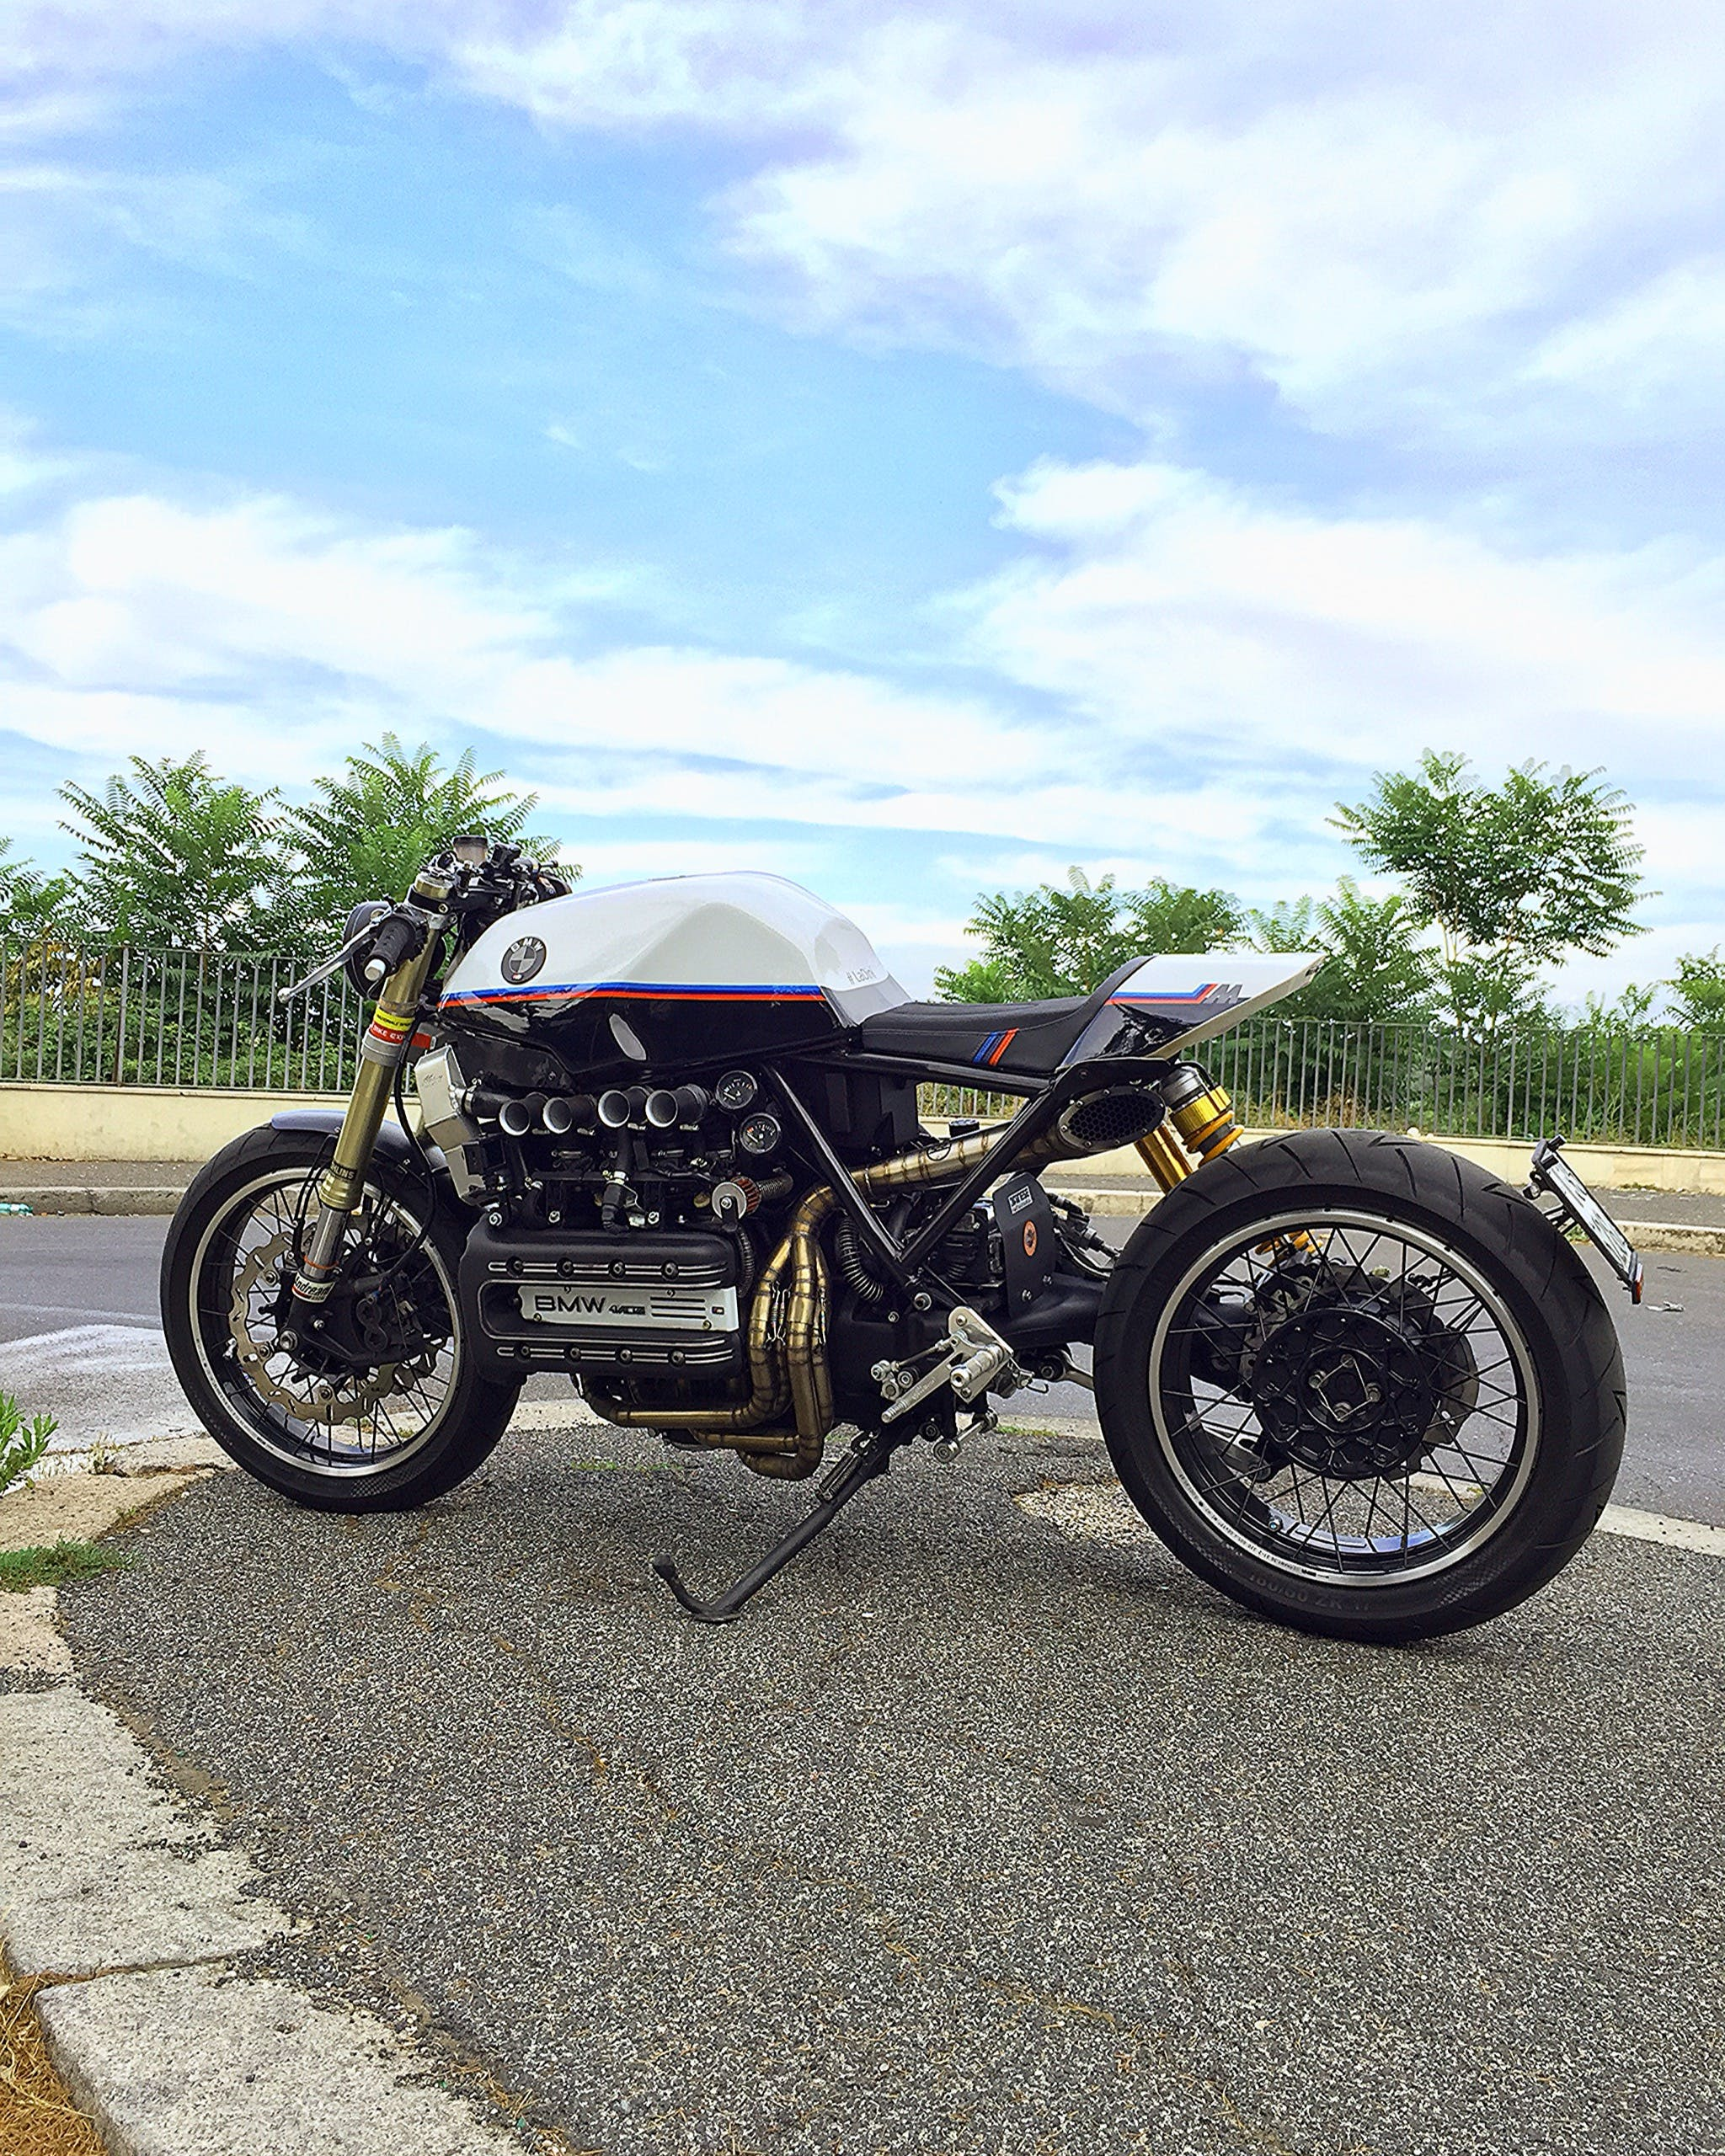 Free stock photo of #caferacer